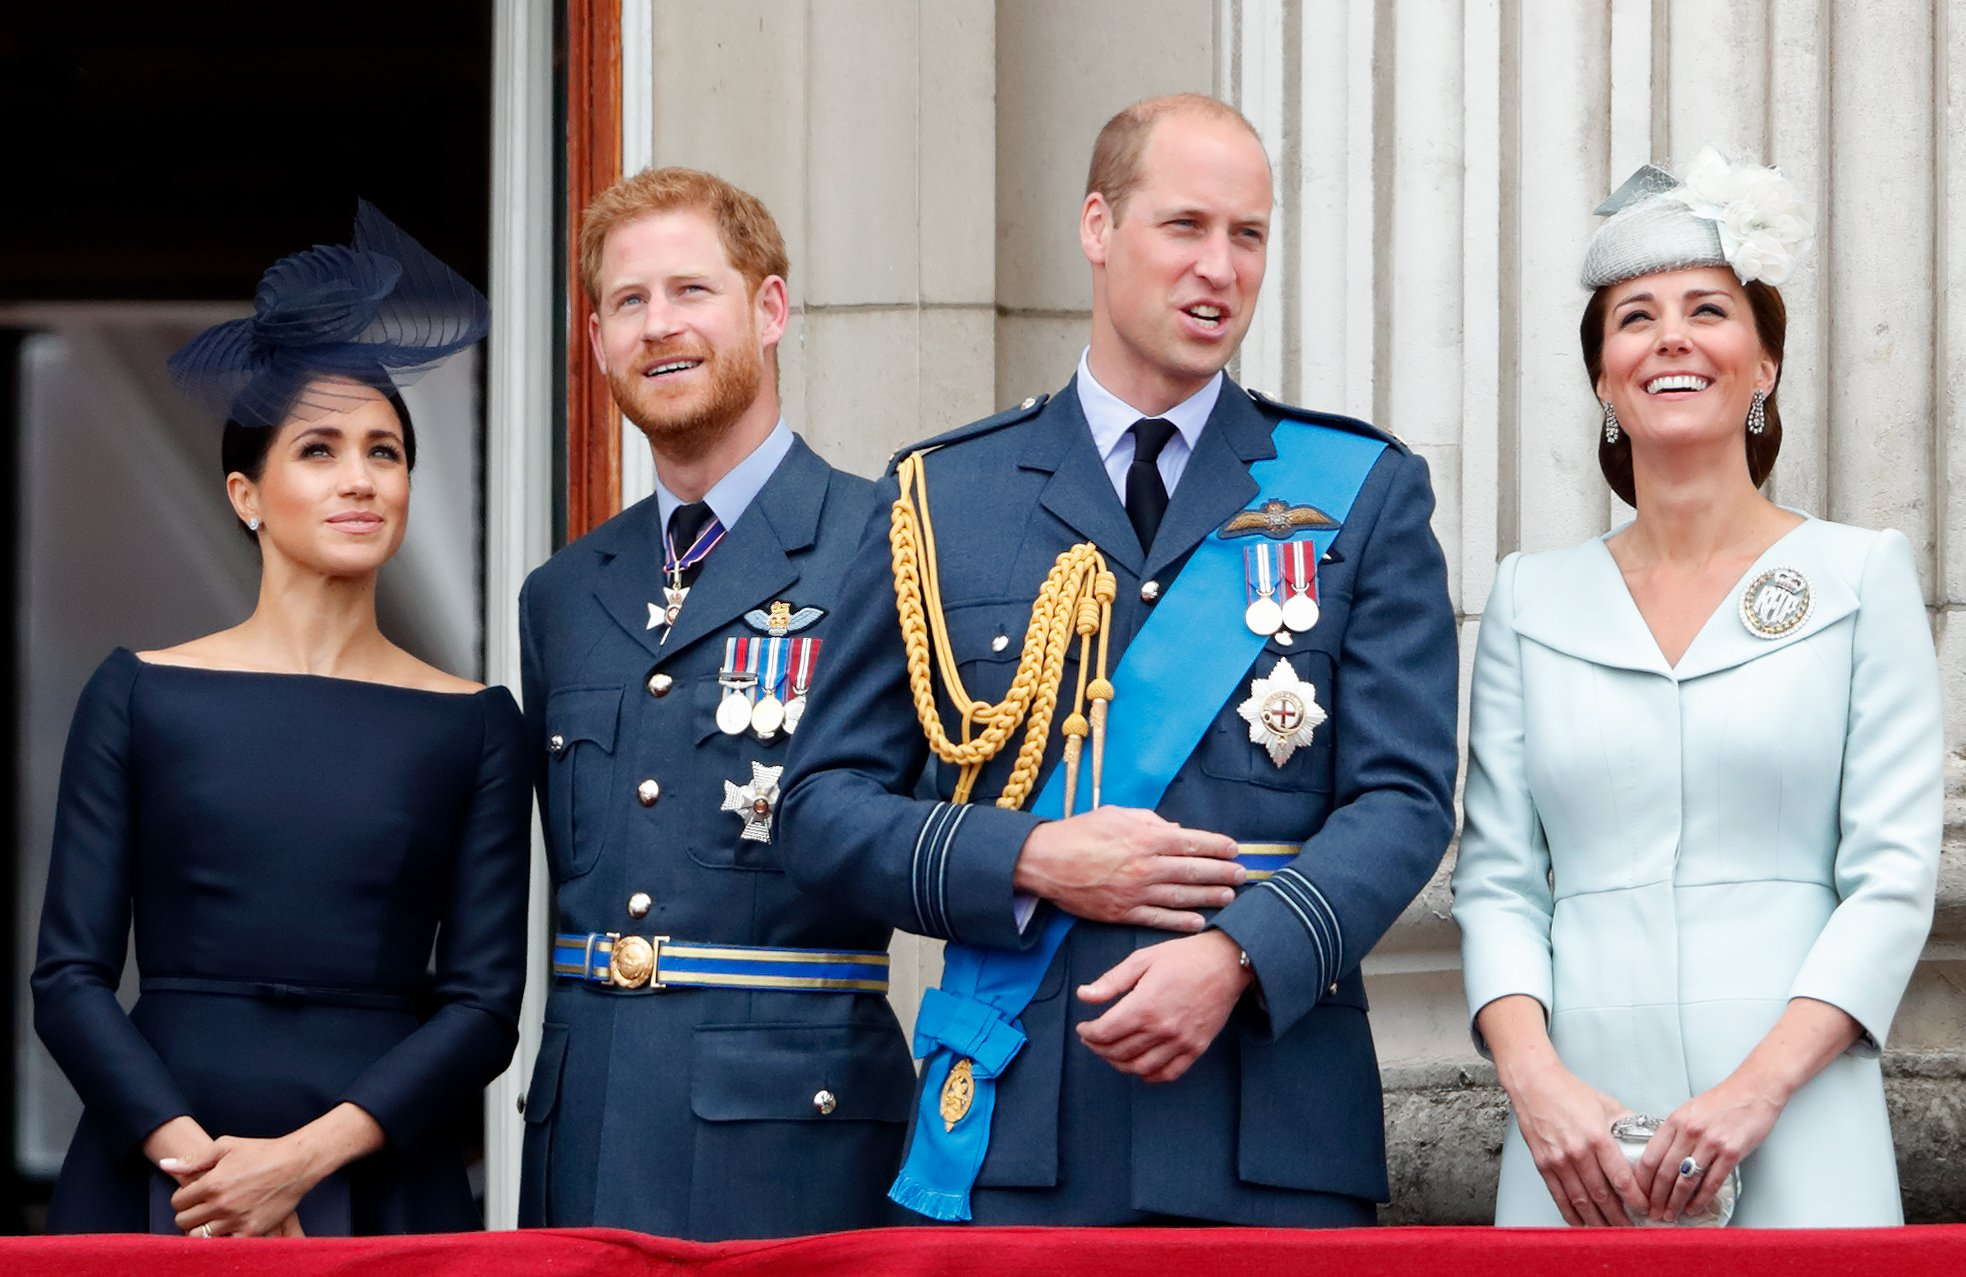 Image Source: Getty Images/ The Royal Family of the British Monarchy